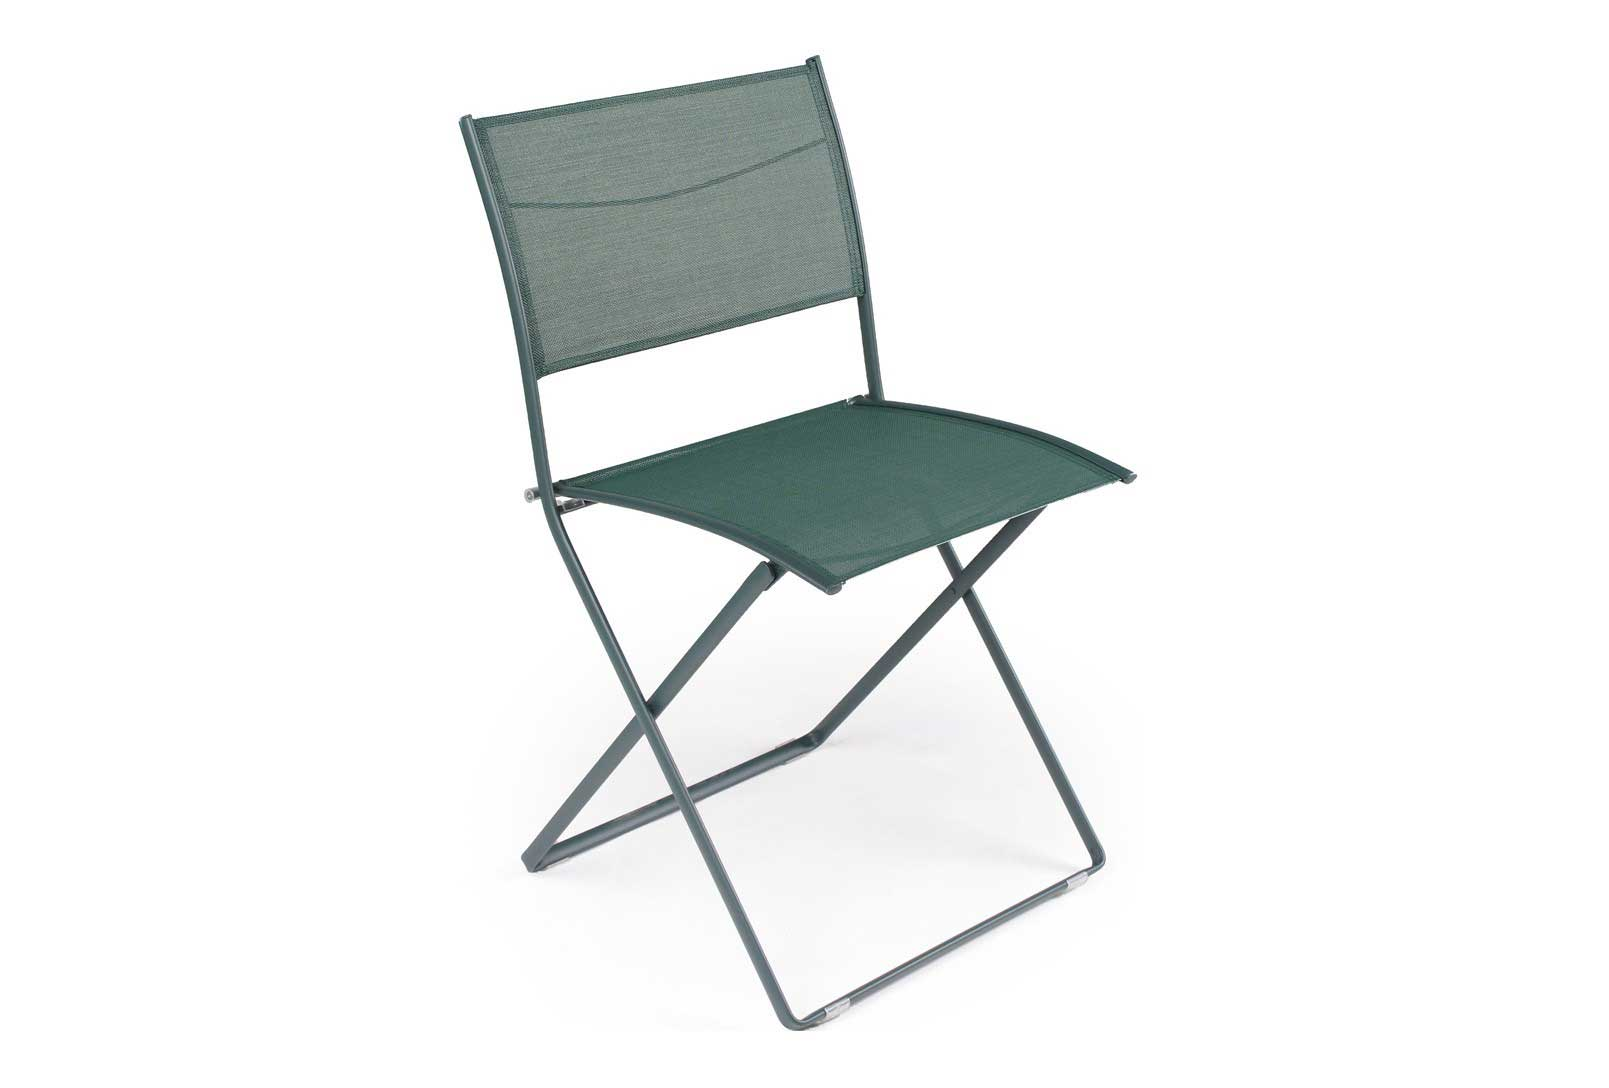 Folding Patio Chairs and Table for fice